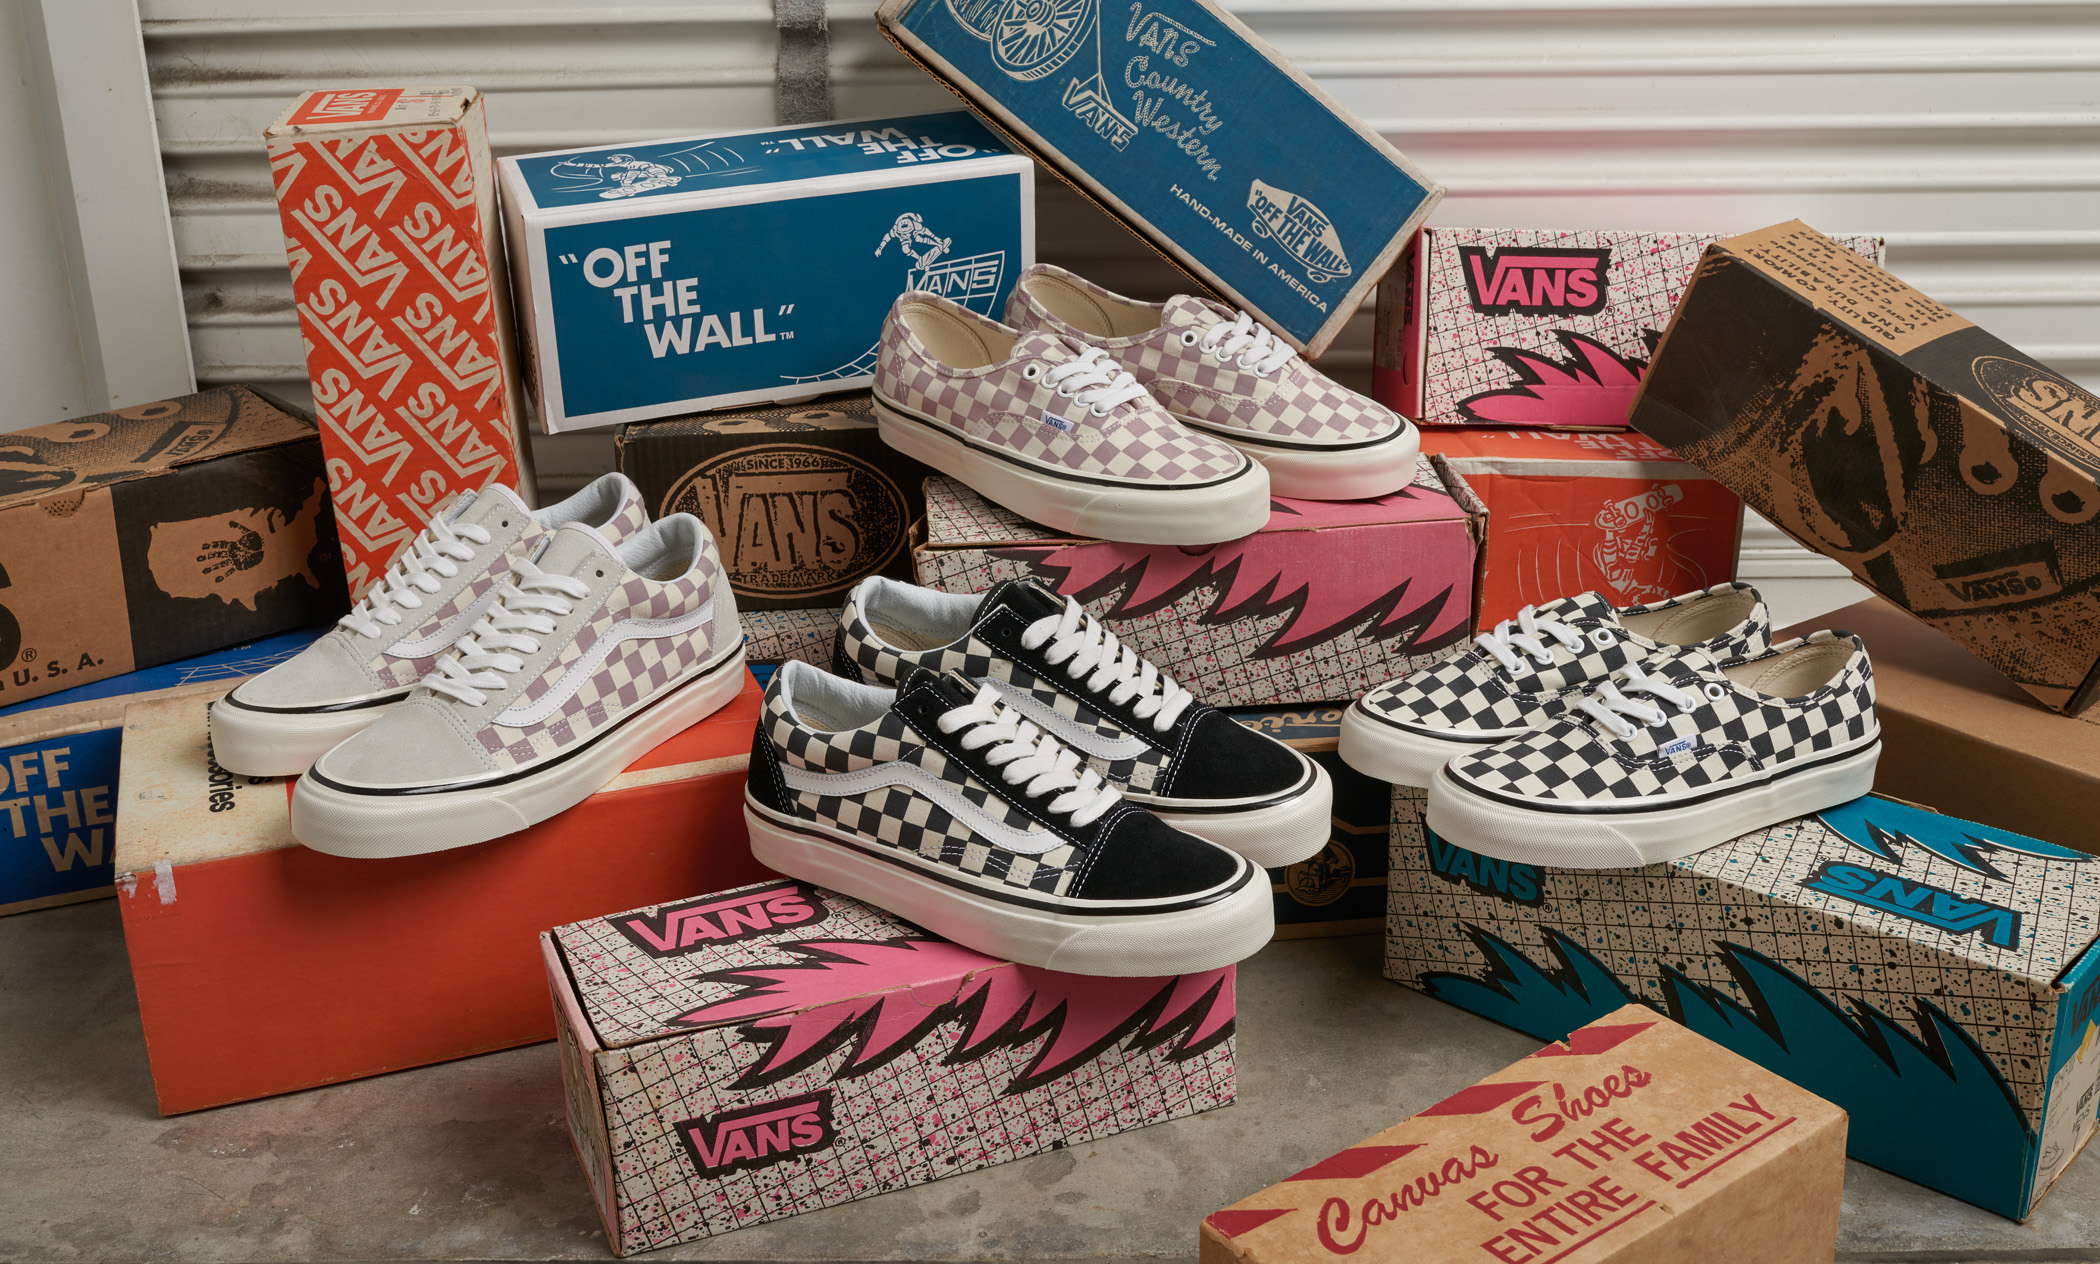 VANS ANAHEIM FACTORY PACK RETURNS FEATURING ICONIC CHECKERBOARD DESIGN